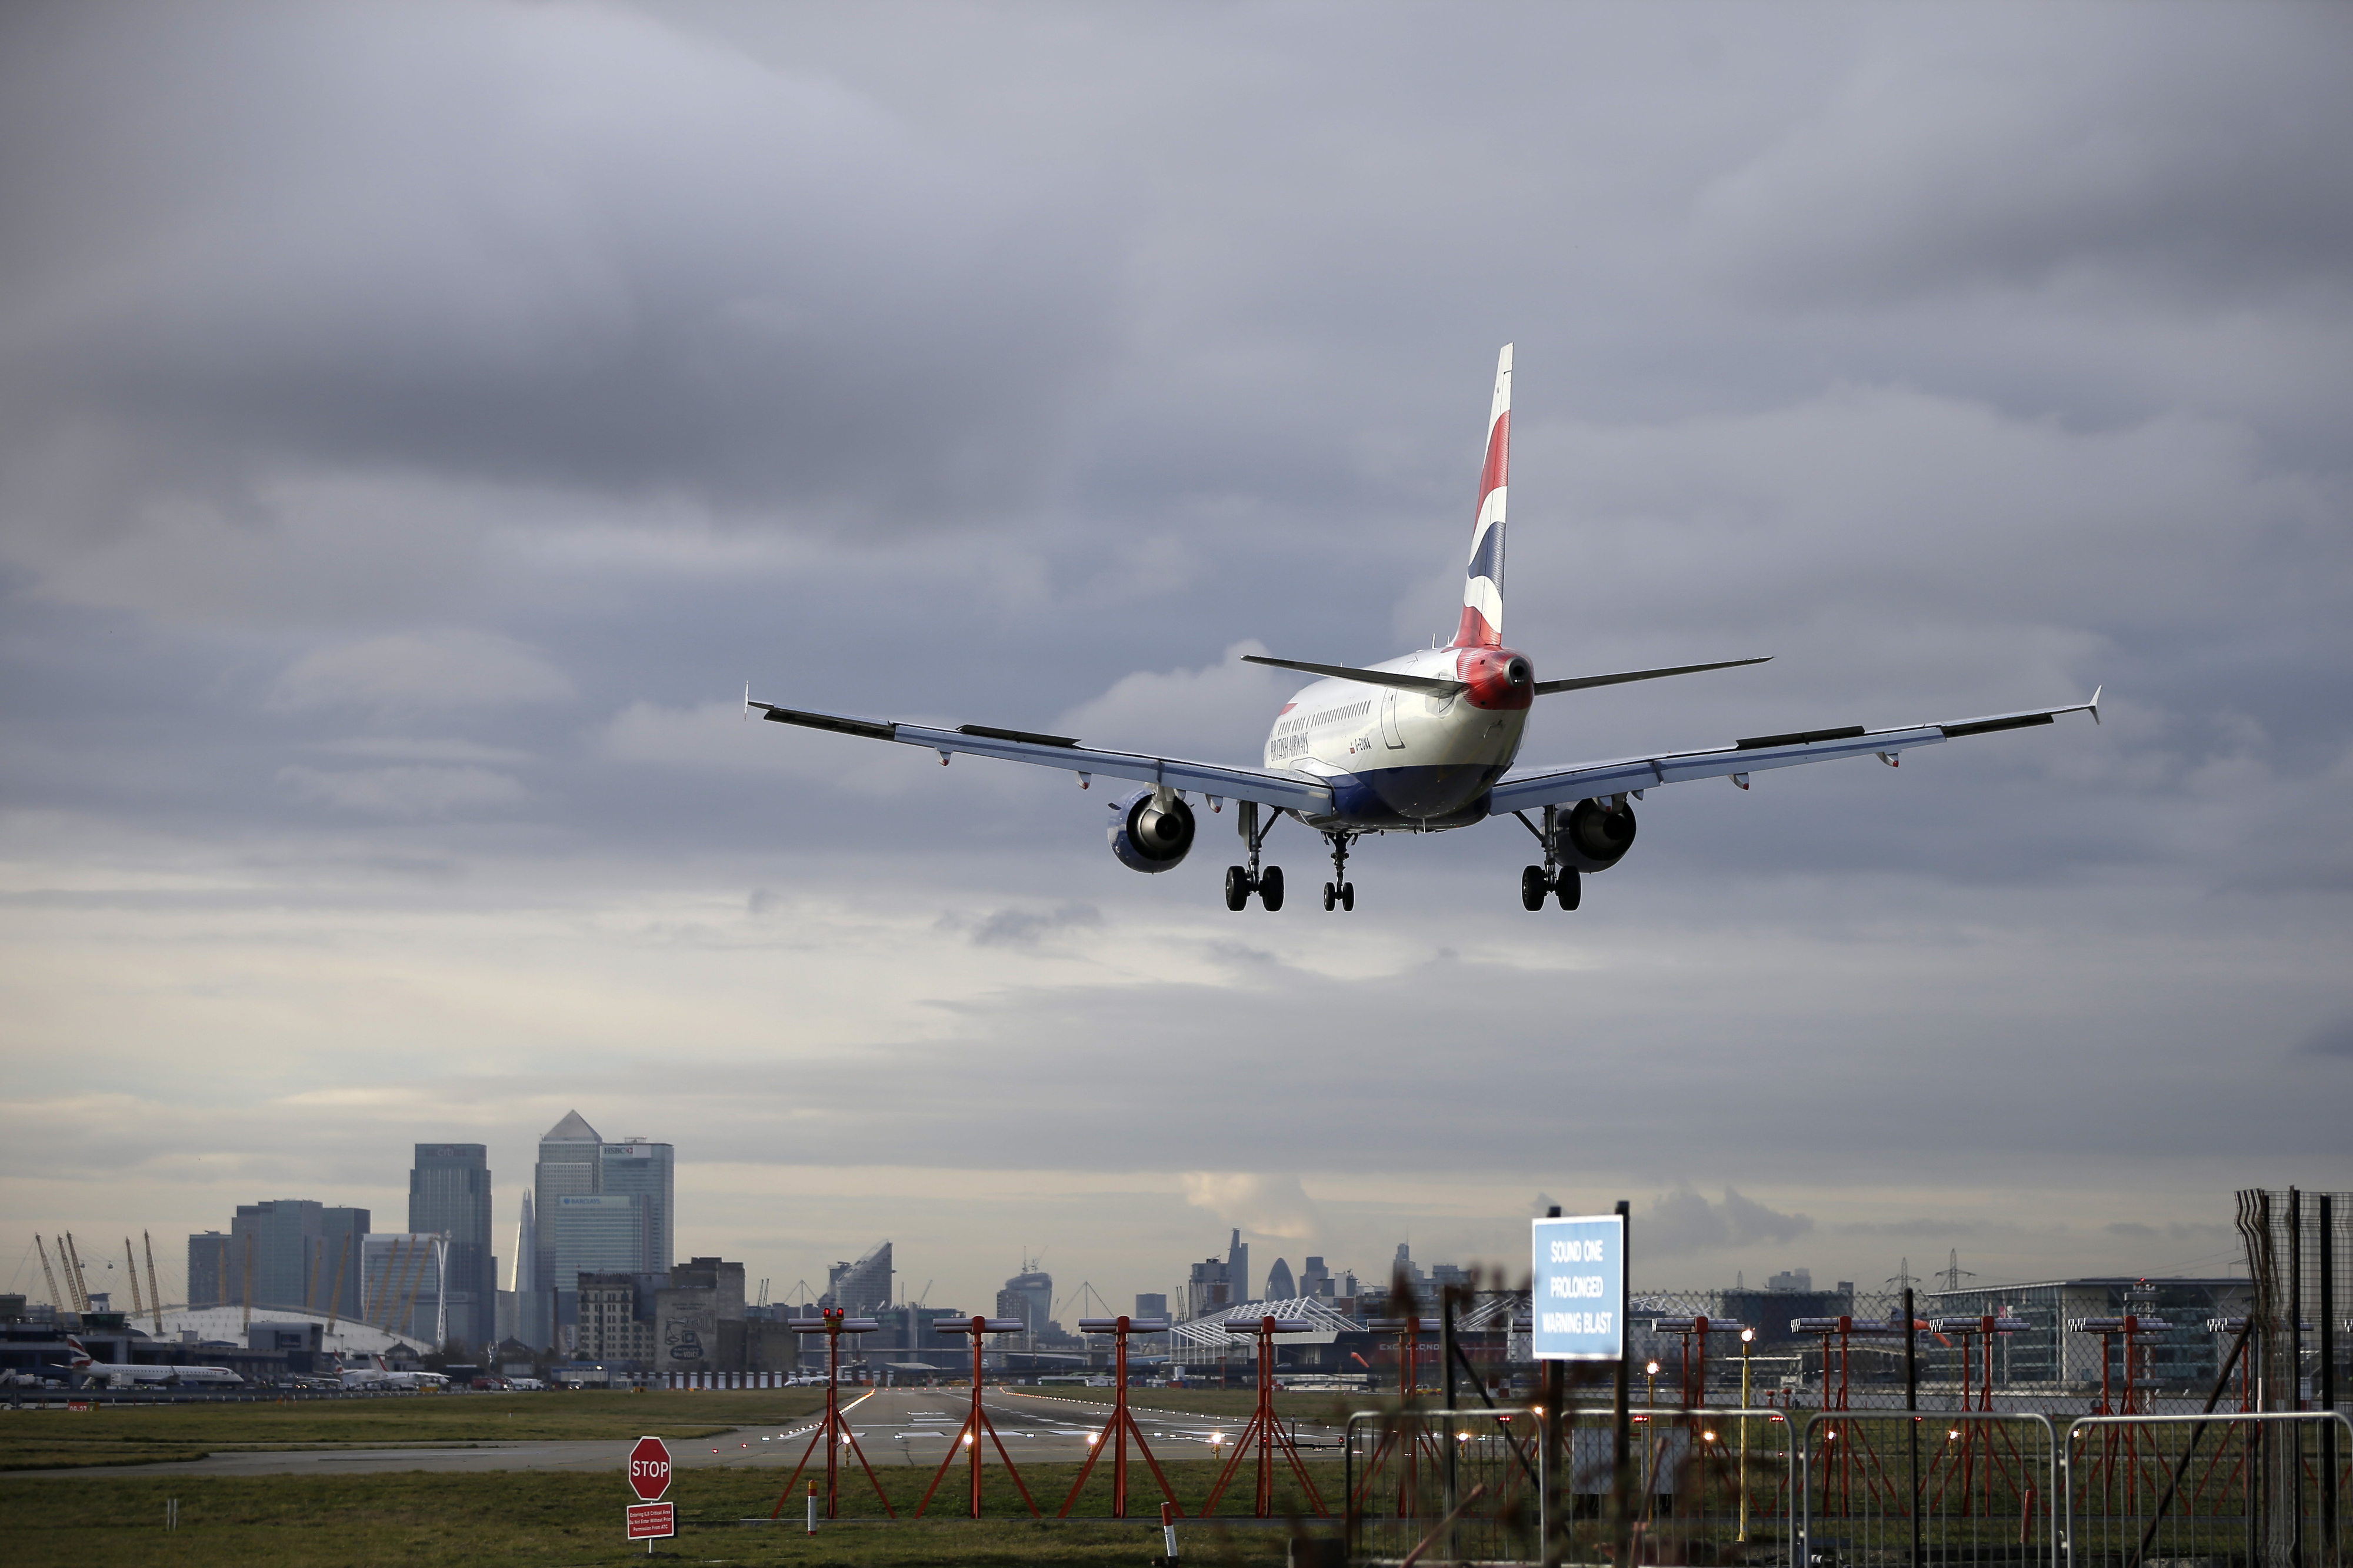 An Embraer SA passenger aircraft, operated by British Airways, a unit of International Consolidated Airlines Group SA (IAG), comes in to land on a runway at London City Airport as commercial skyscrapers of the Canary Wharf business and shopping district stand beyond in London, U.K., on Tuesday, Jan. 21, 2014.